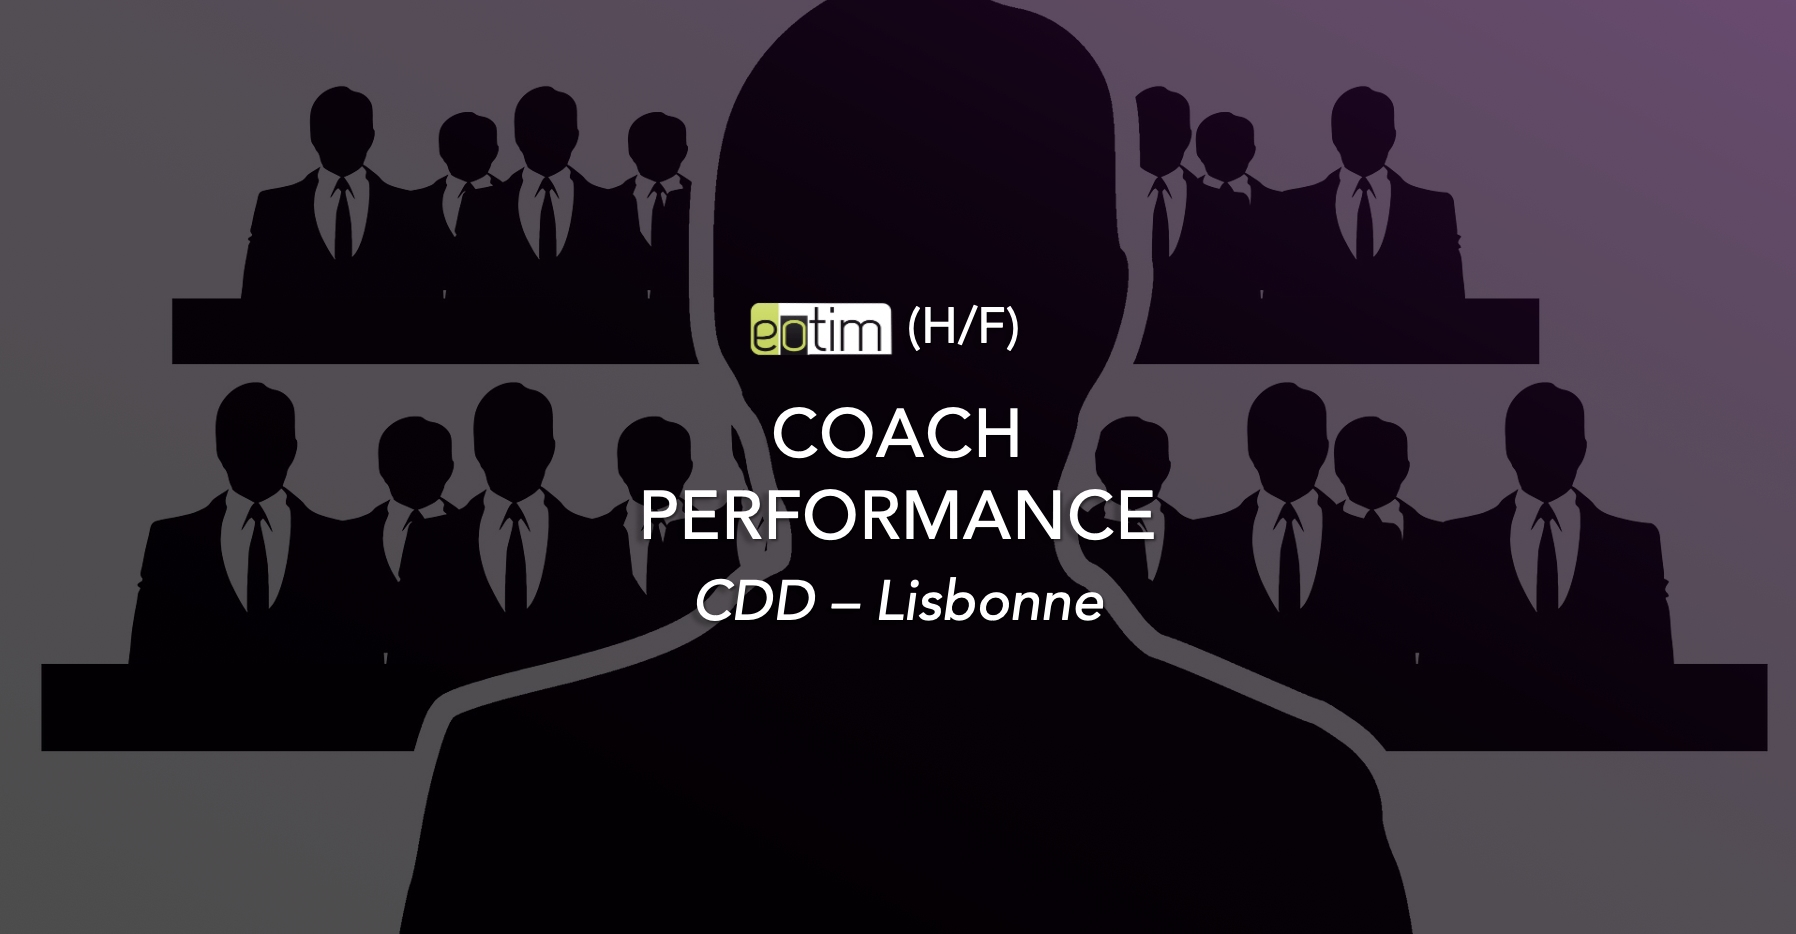 Coach performance